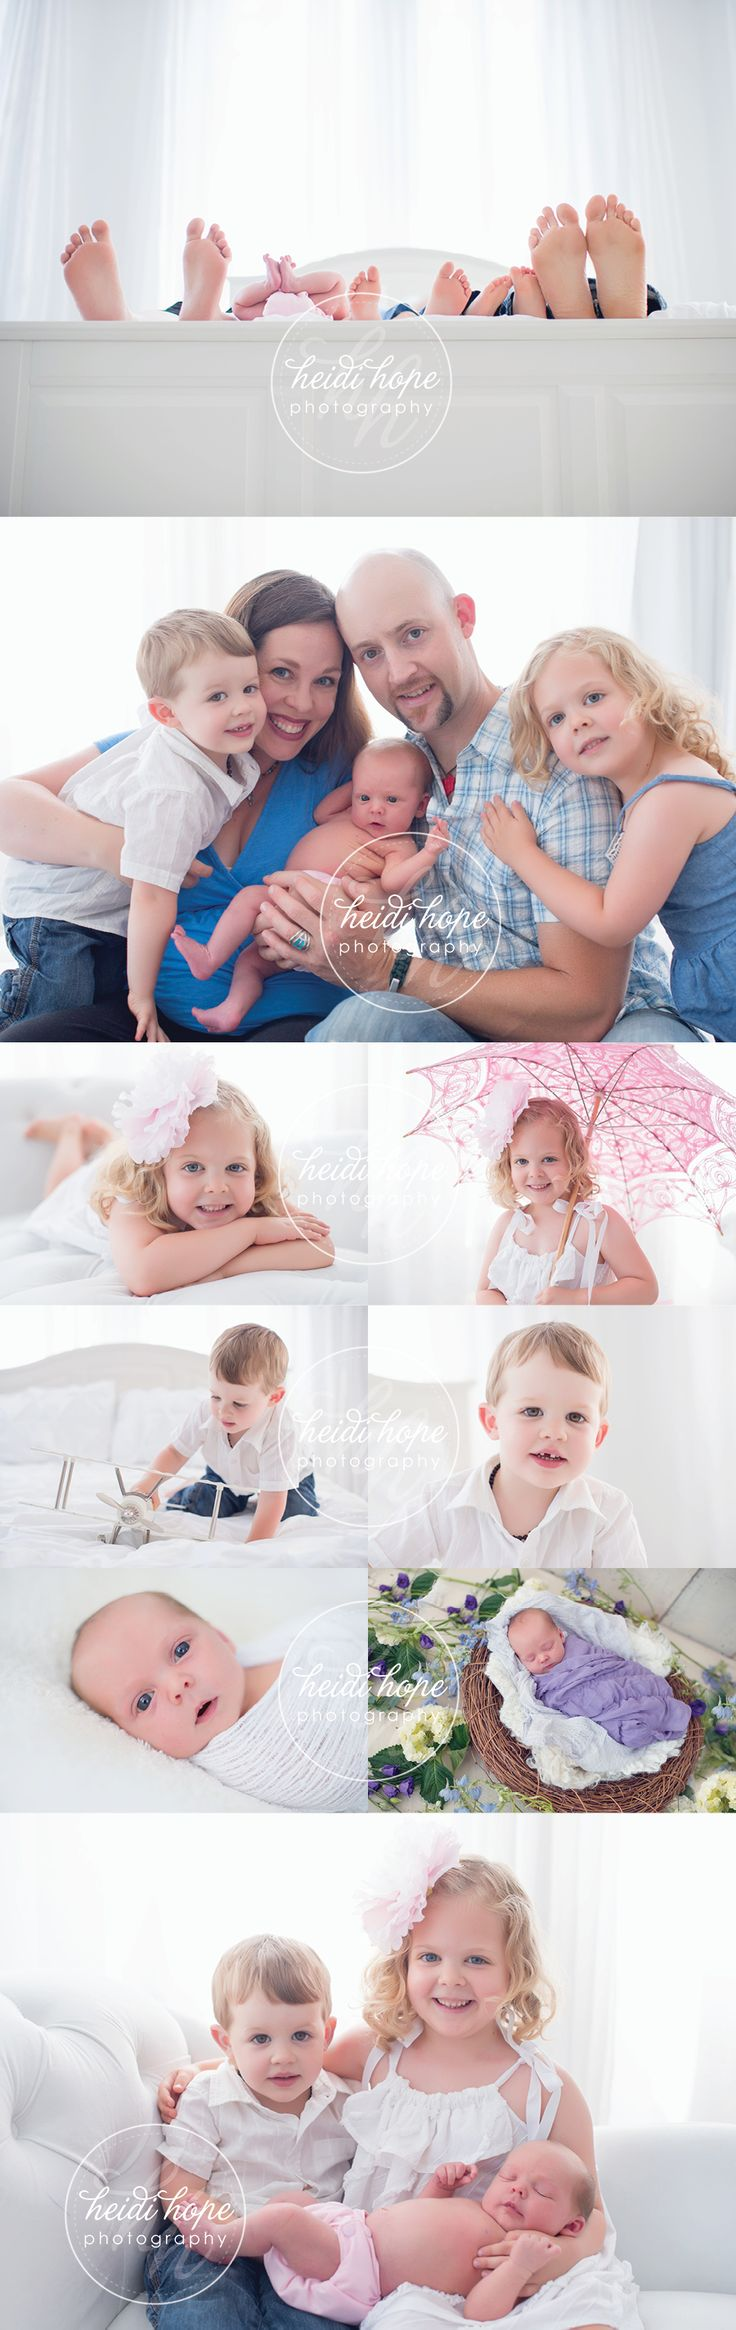 Family and newborn session!  #family #newborn #allsmiles